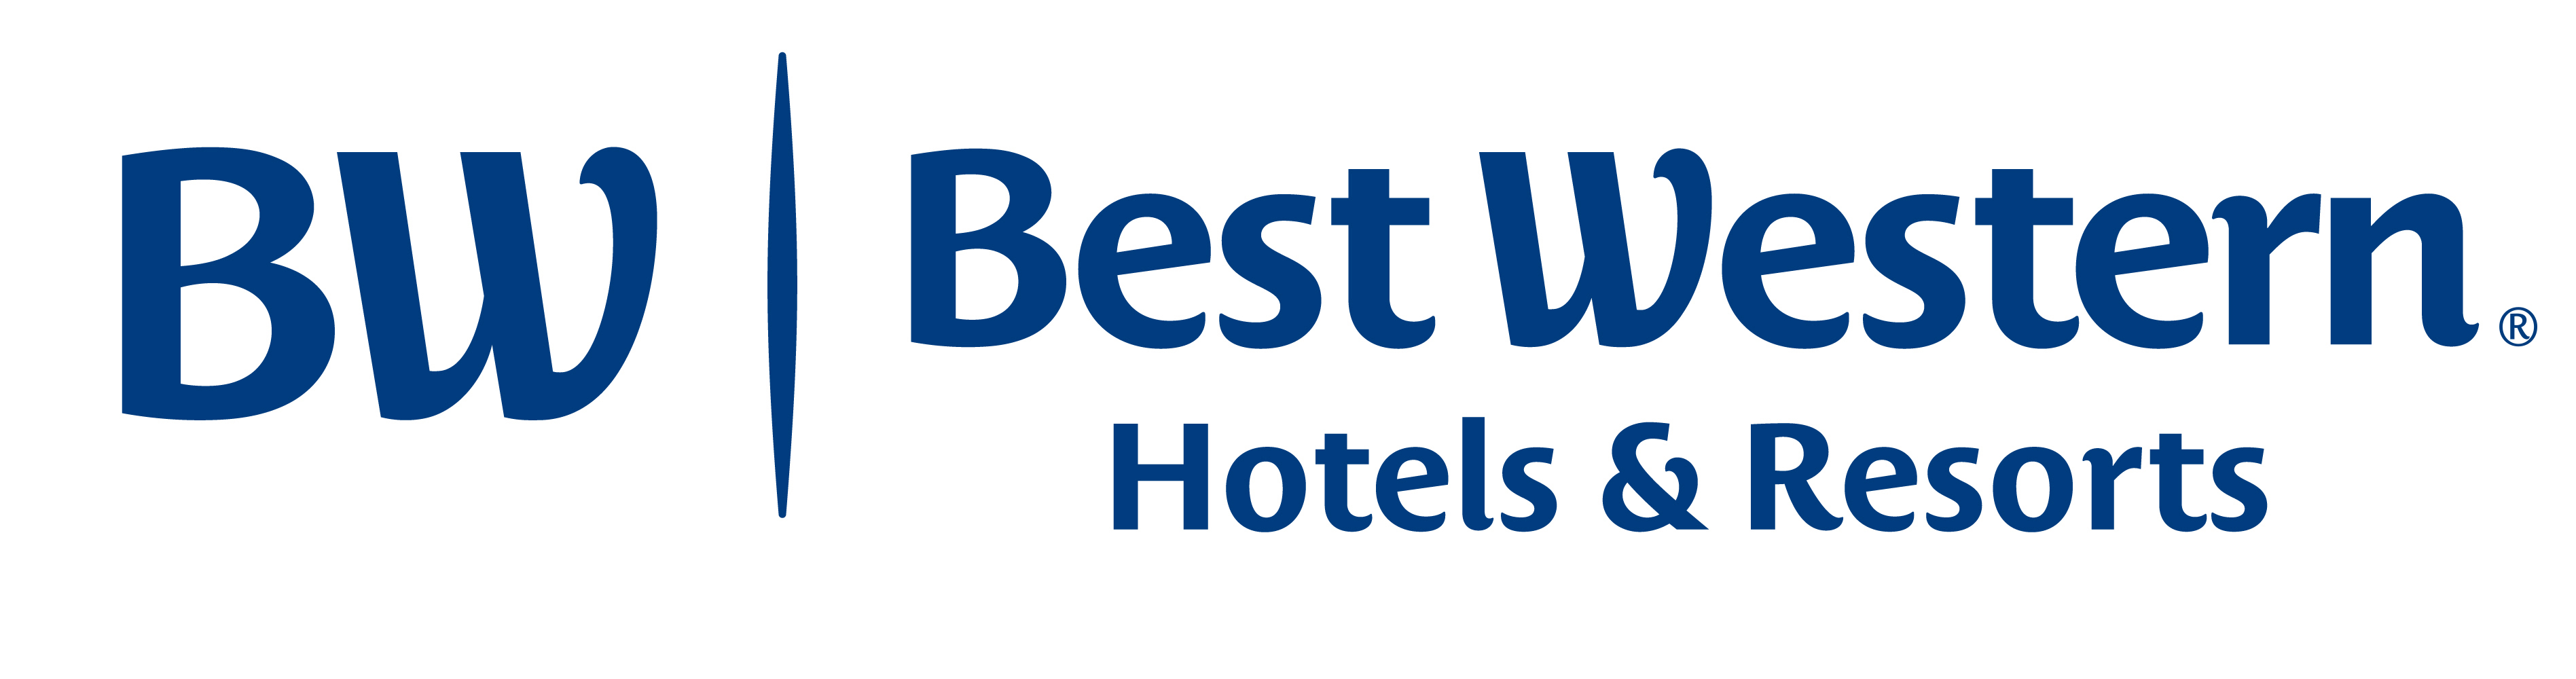 Logo BEST WESTERN HOTELS & RESORTS